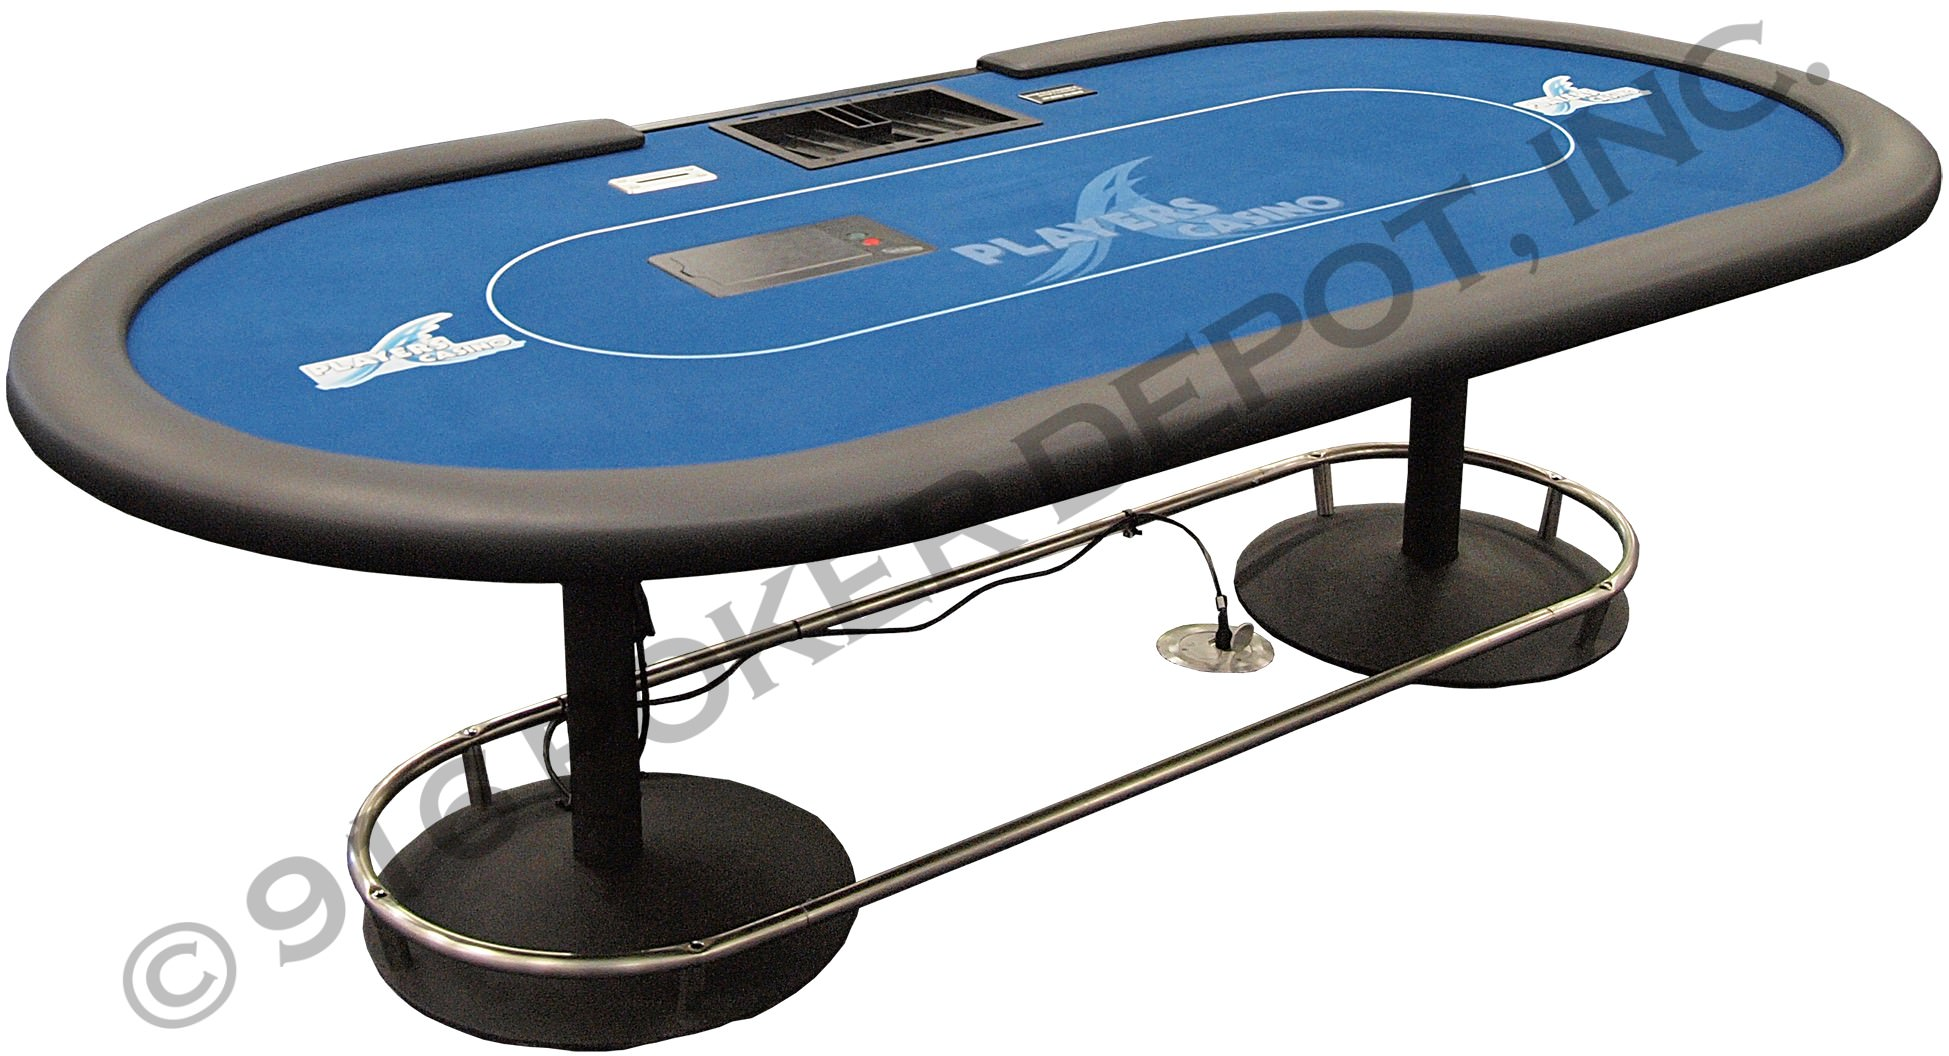 Texas Hold'em Poker Tables